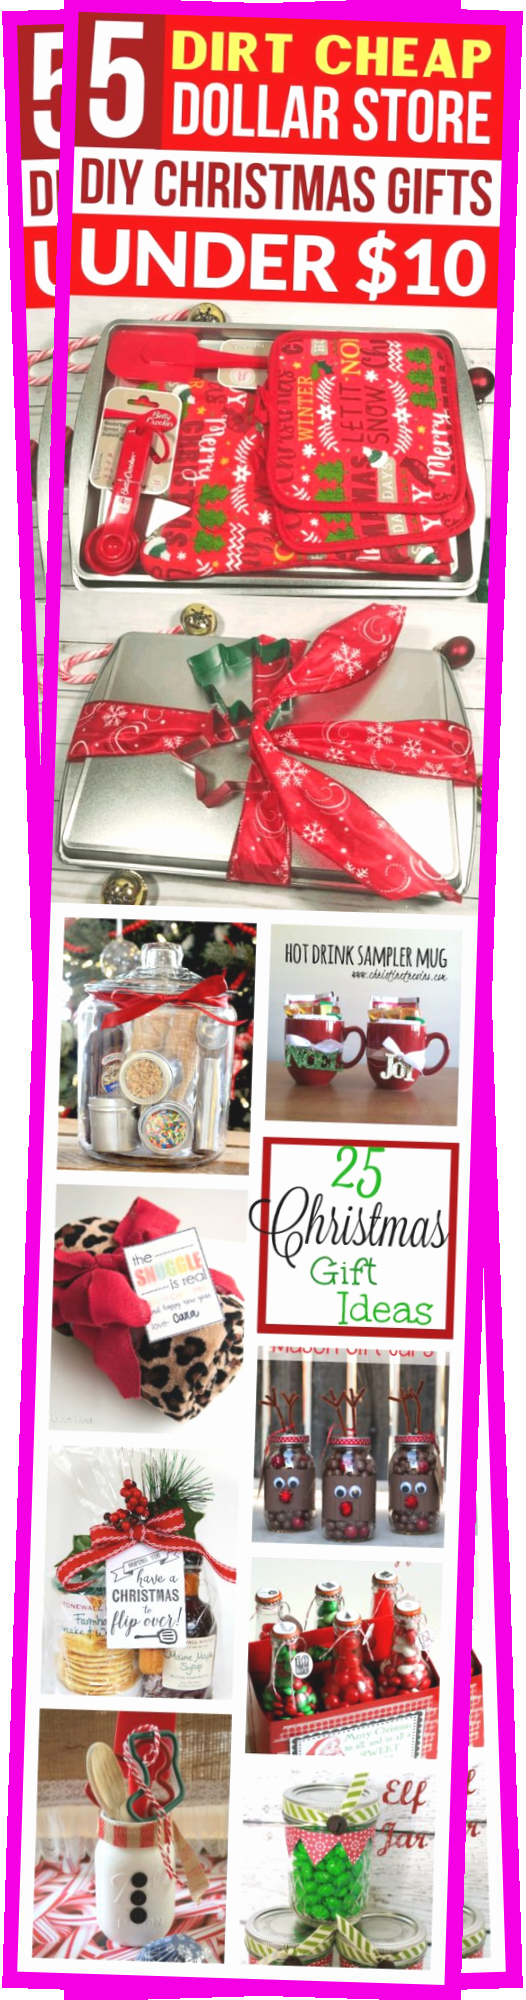 These DIY Christmas Gifts from the Dollar Store are so EASY! The BEST inexpensive holiday gift ideas from the Dollar Store under $10!! Now I can make homemade holiday gift baskets for family, friends, & coworkers from the Dollar Tree on the cheap!! | Holiday Gifts for coworkers #christmasgifts #christmas #diychristmasgifts #diy #christmas #gifts #homeideas #homeforchristmas #holidaypartyfood #appetizersholiday #christmascaserole #holidayideas #travelideas #christmasideas